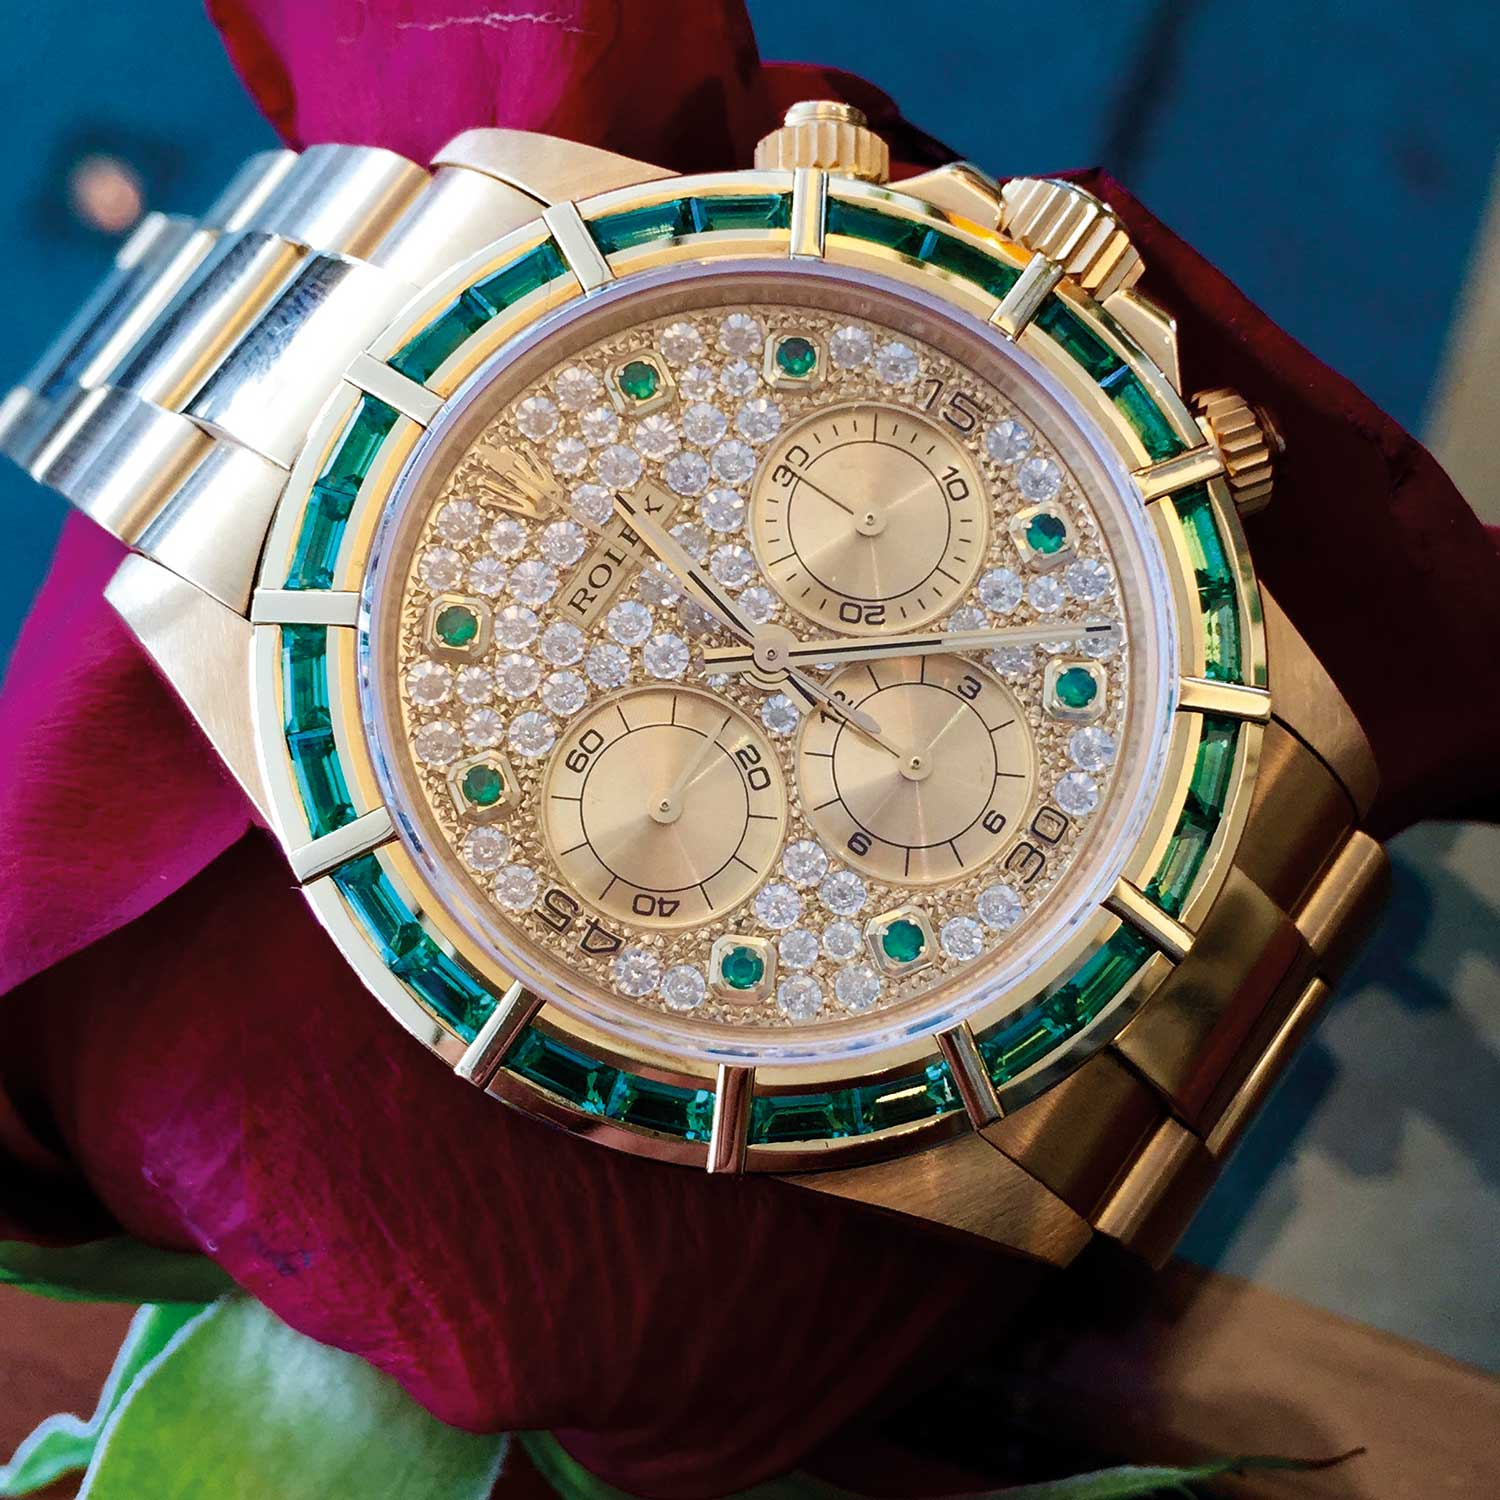 A Rolex Daytona reference 16528 in yellow gold with baguette-cut emerald bezel and emerald hour markers. Confirmed by Rolex as delivered in this configuration and the only one ever seen.